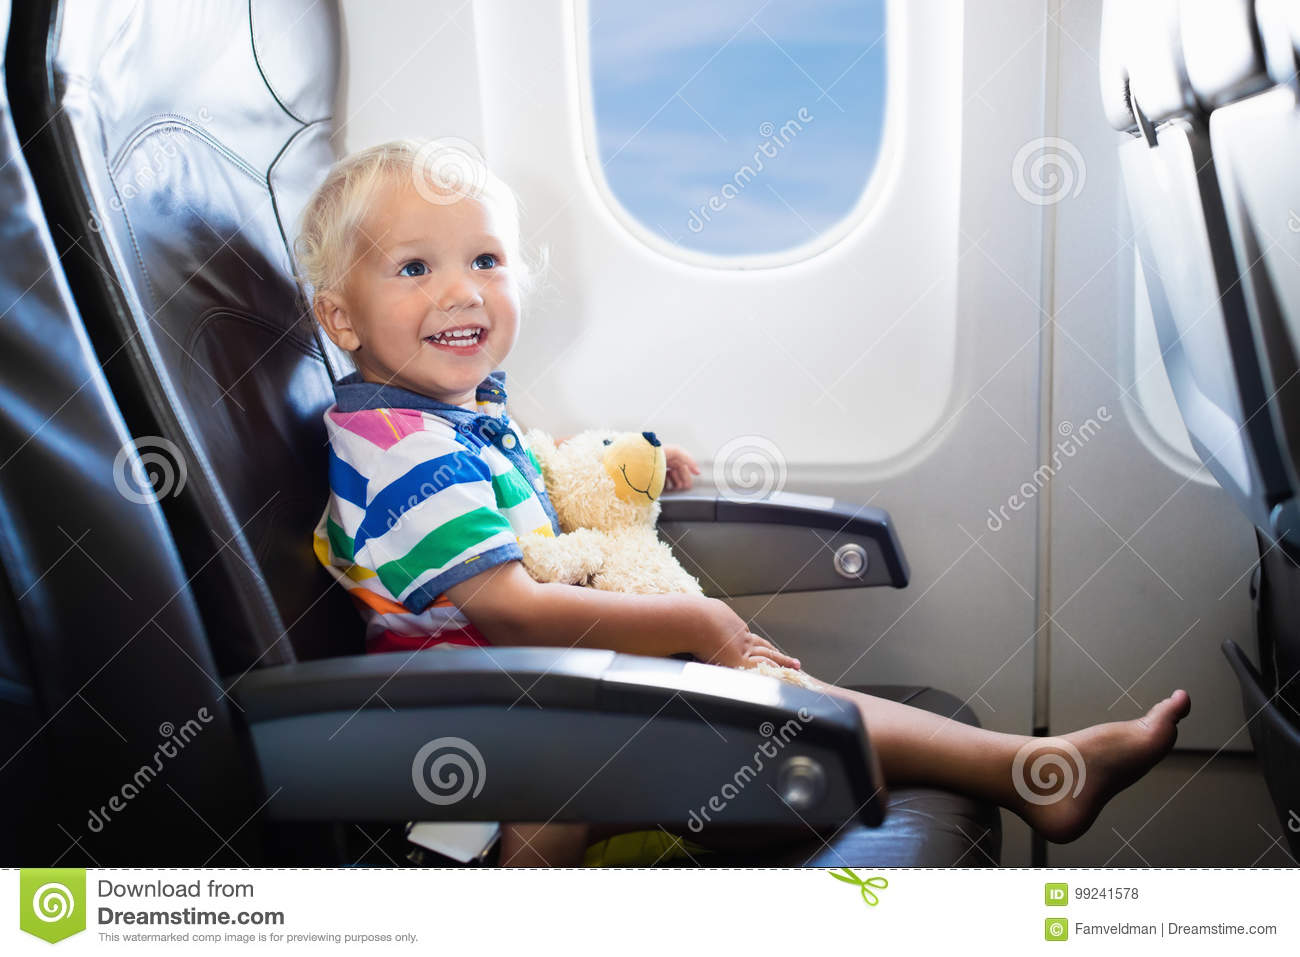 Child Flying In AirplaneFlight With Kids